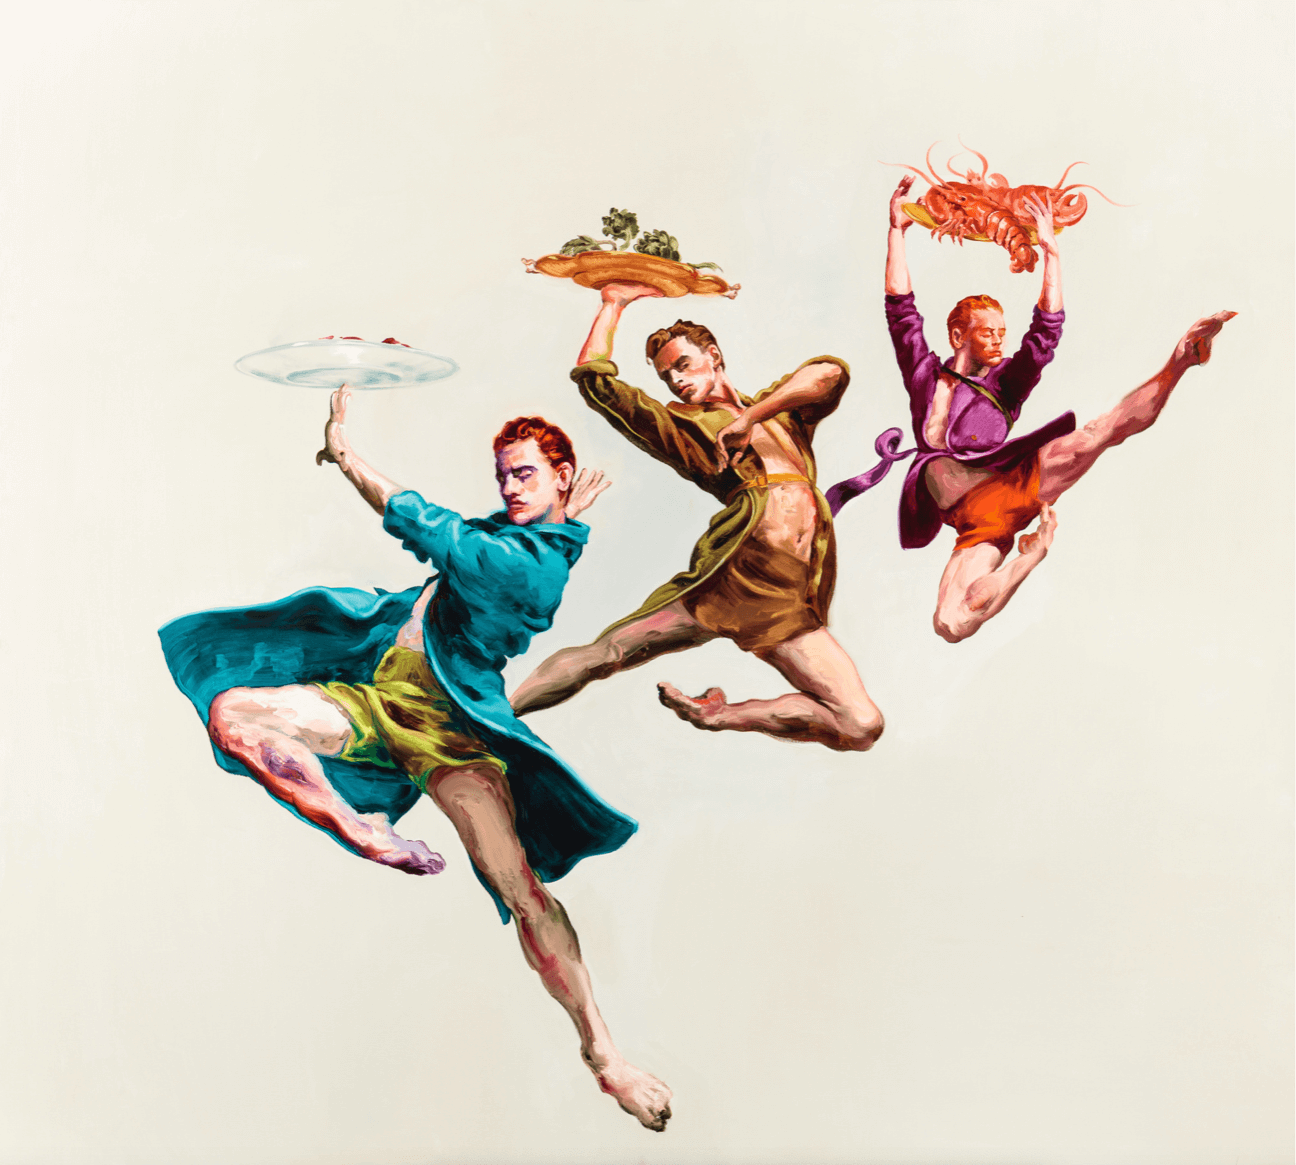 Painting of men ballet dancers holding food trays by international artist Sala Lieber